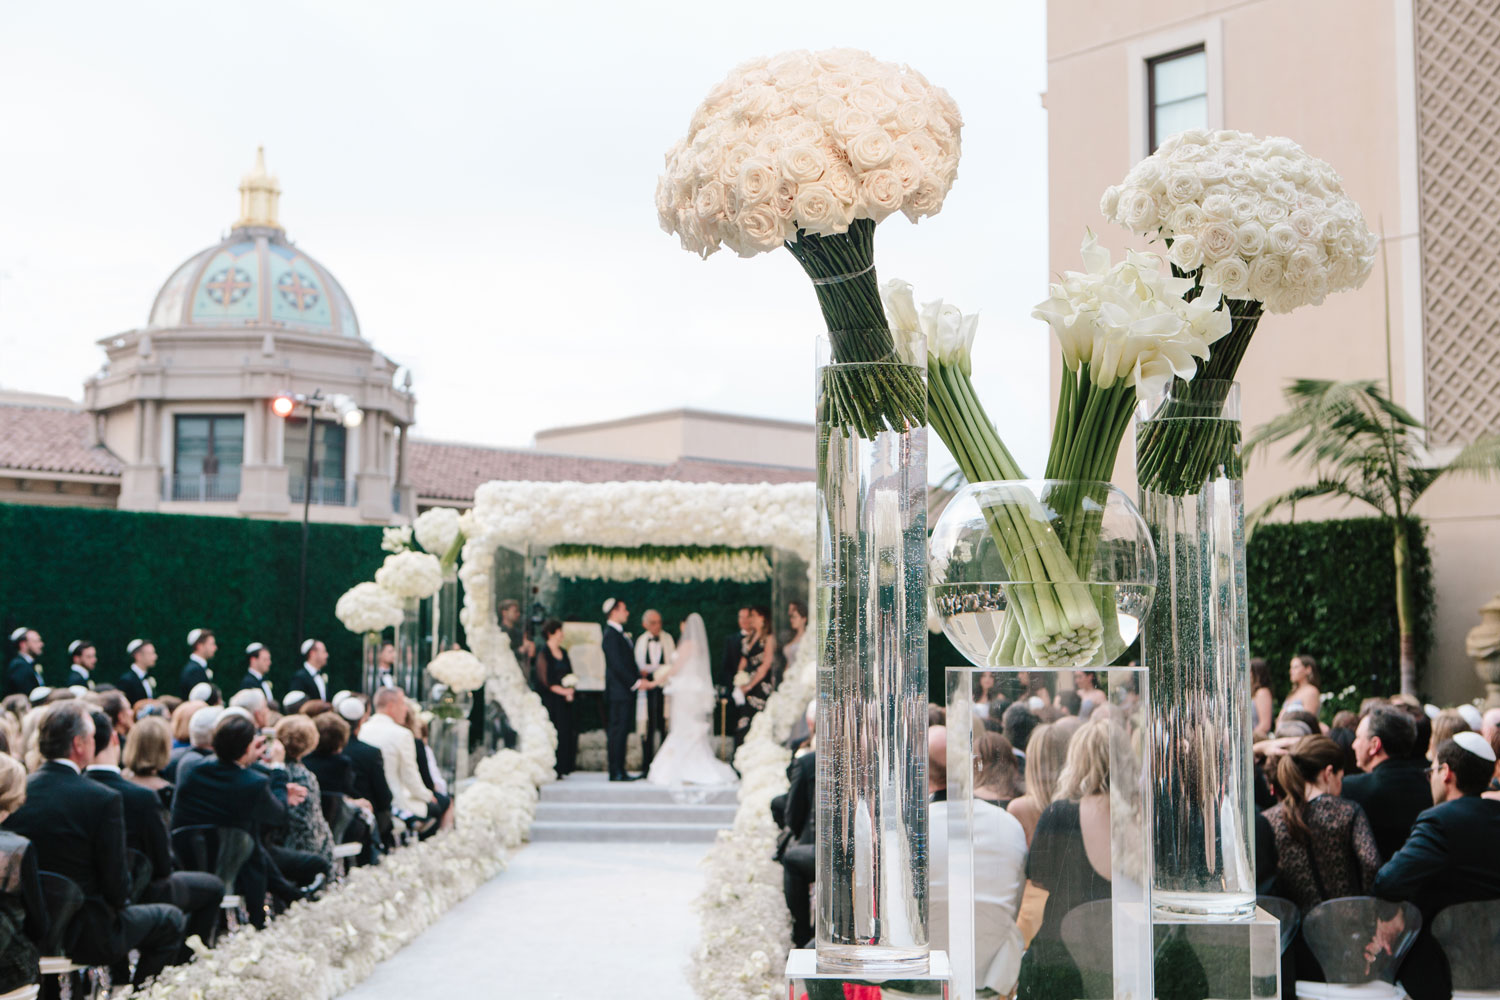 White flowers at outdoor city wedding ceremony geller events revelry event designers inside weddings spring 2018 issue